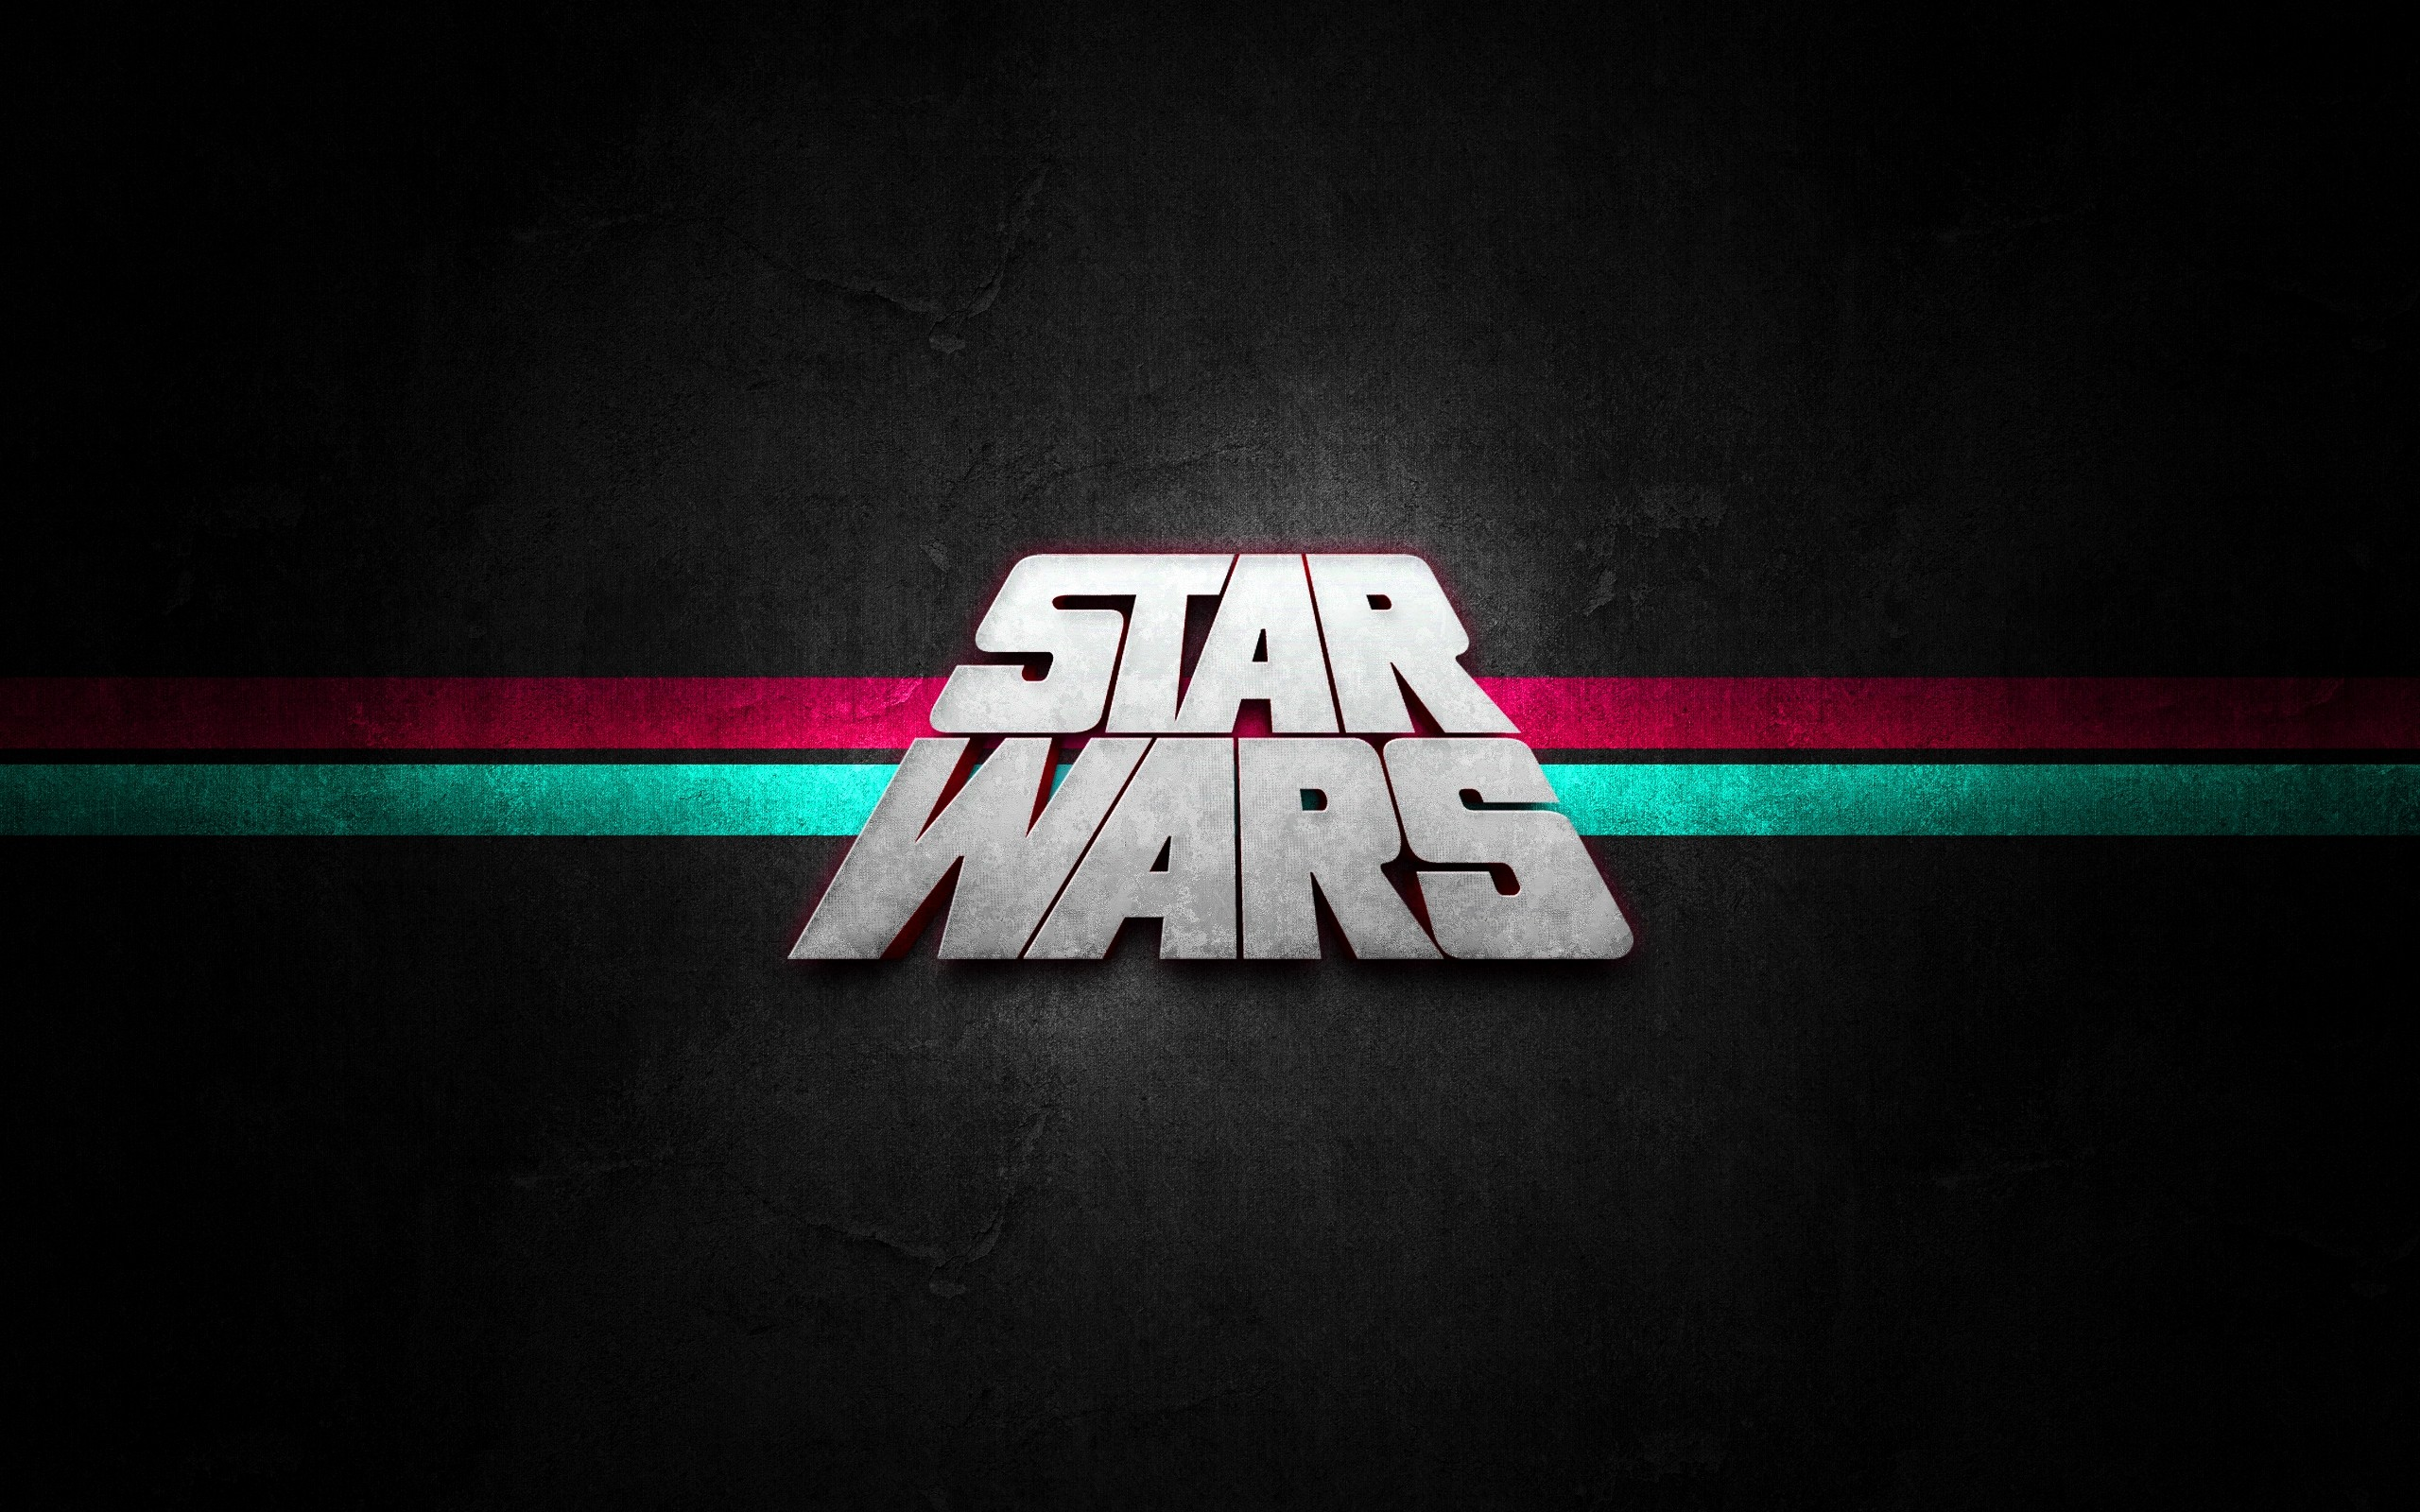 2560x1600 star wars background logo hd wallpapers amazing cool desktop wallpapers for  windows apple mac tablet free